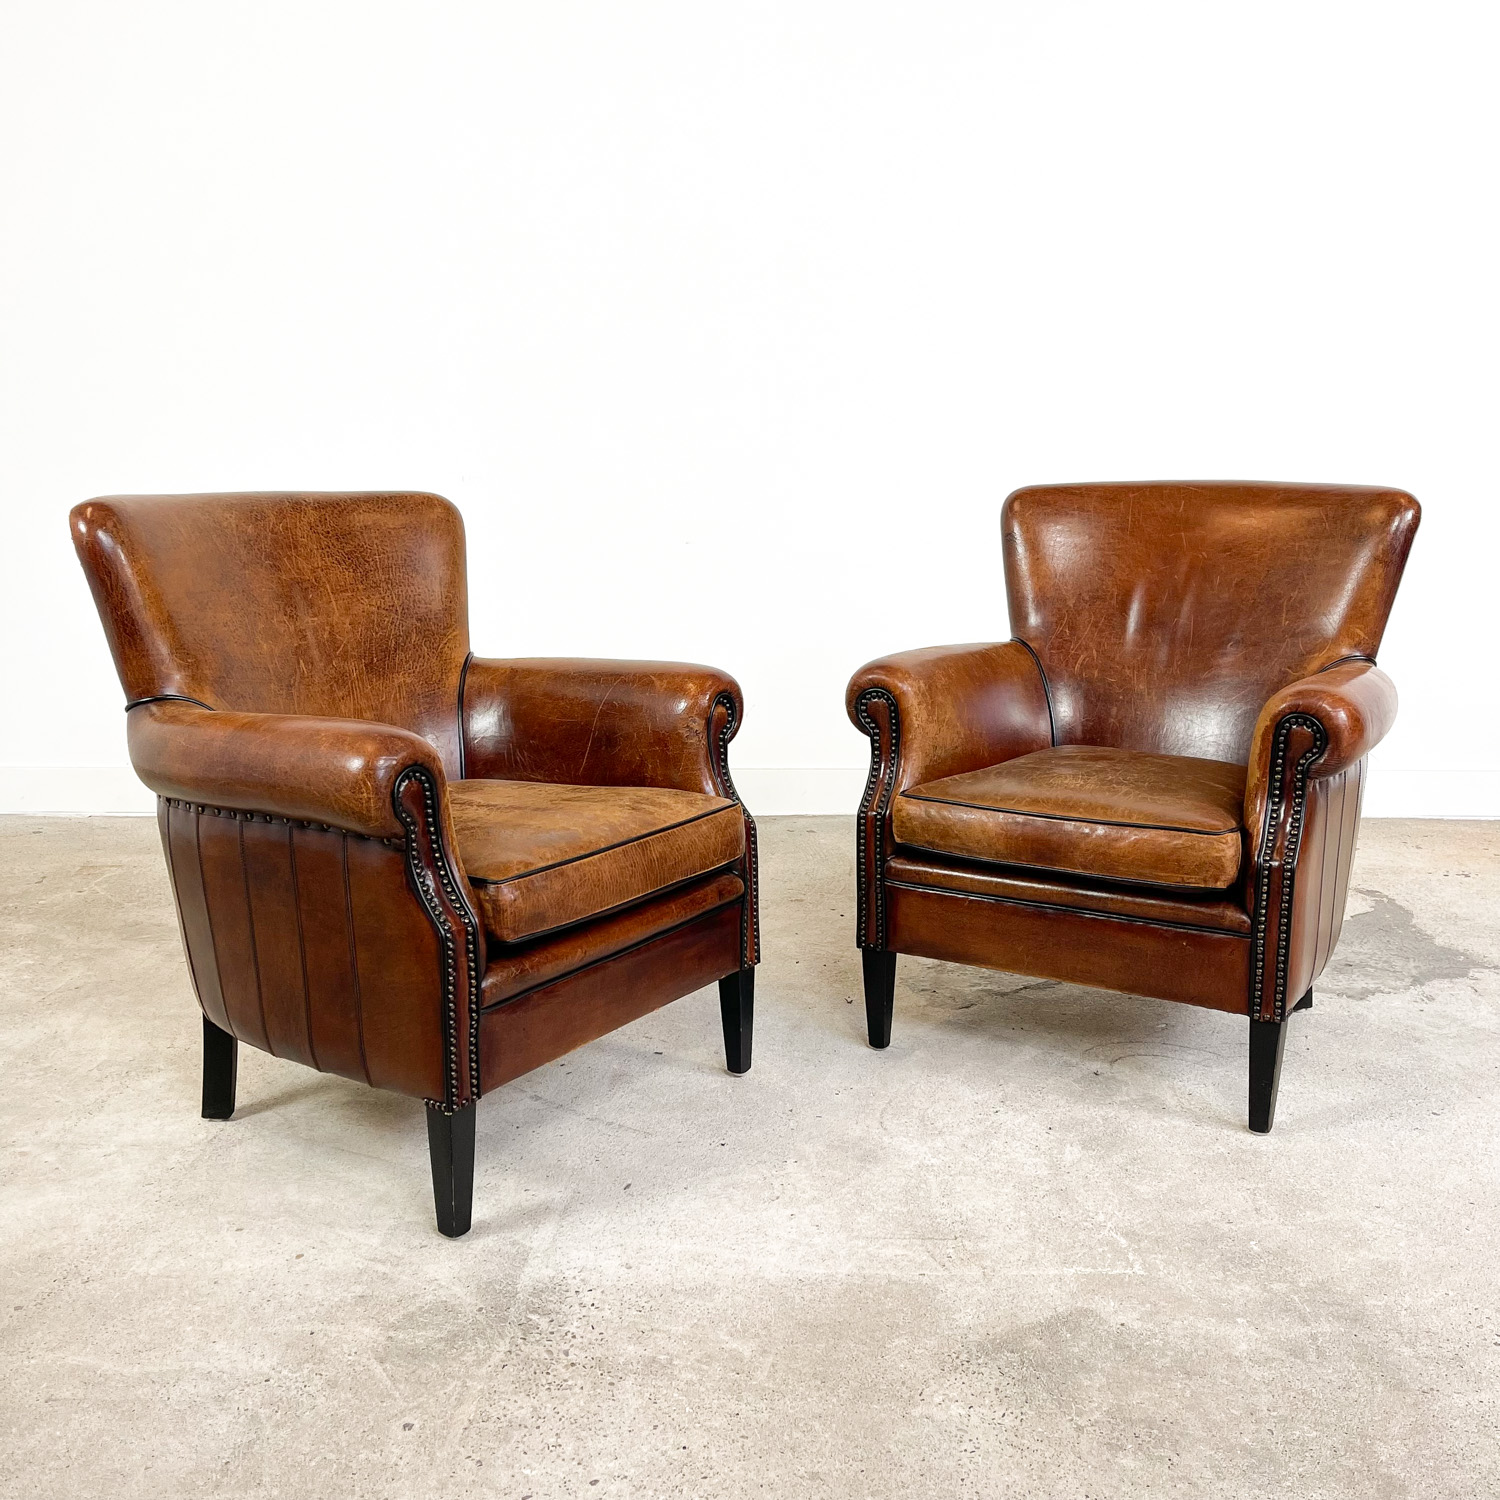 Set of two vintage sheep leather armchairs by Loung Atelier